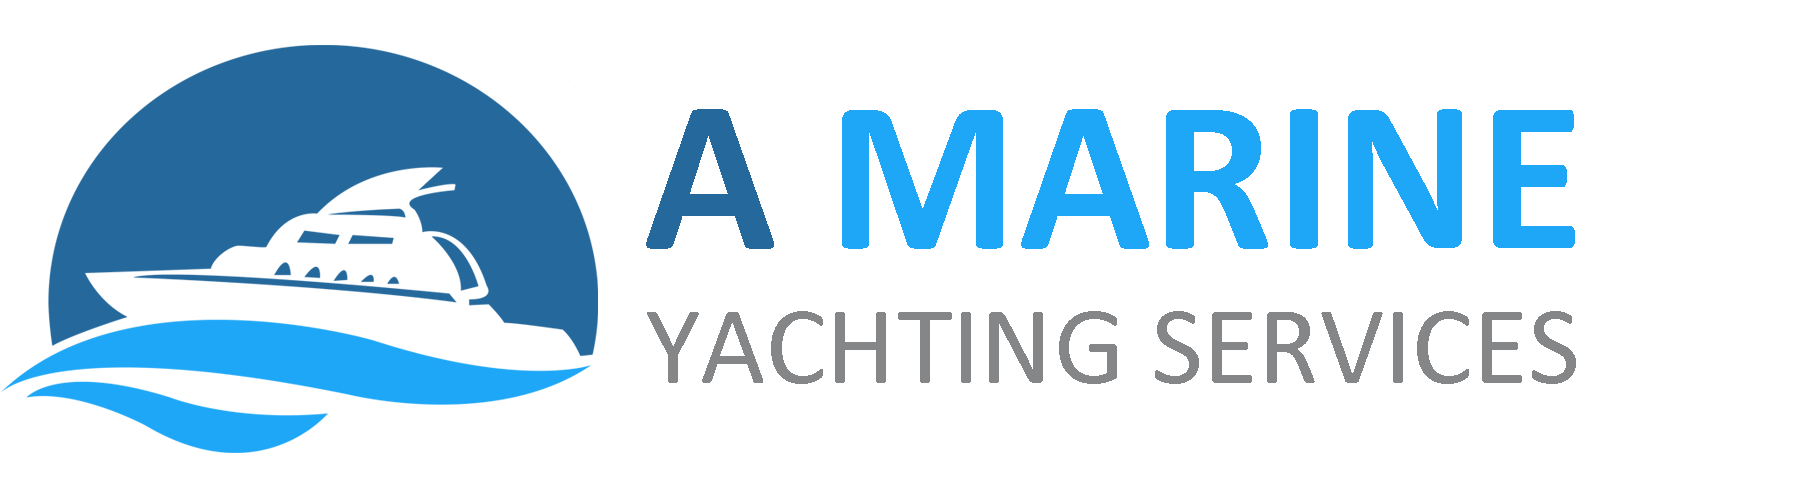 A MARINE YACHTING